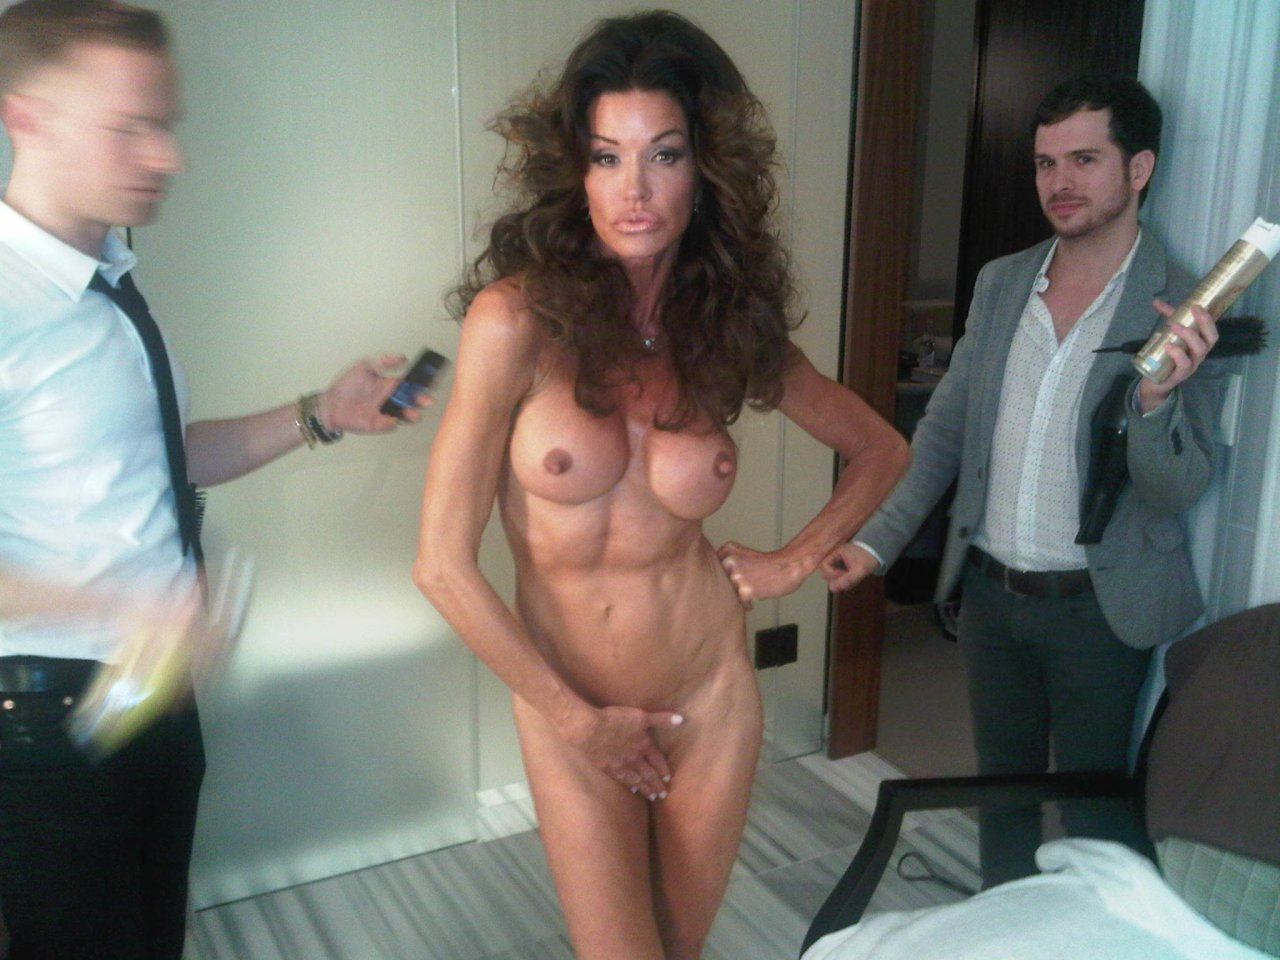 Plastic surgery milf auditions for tv show